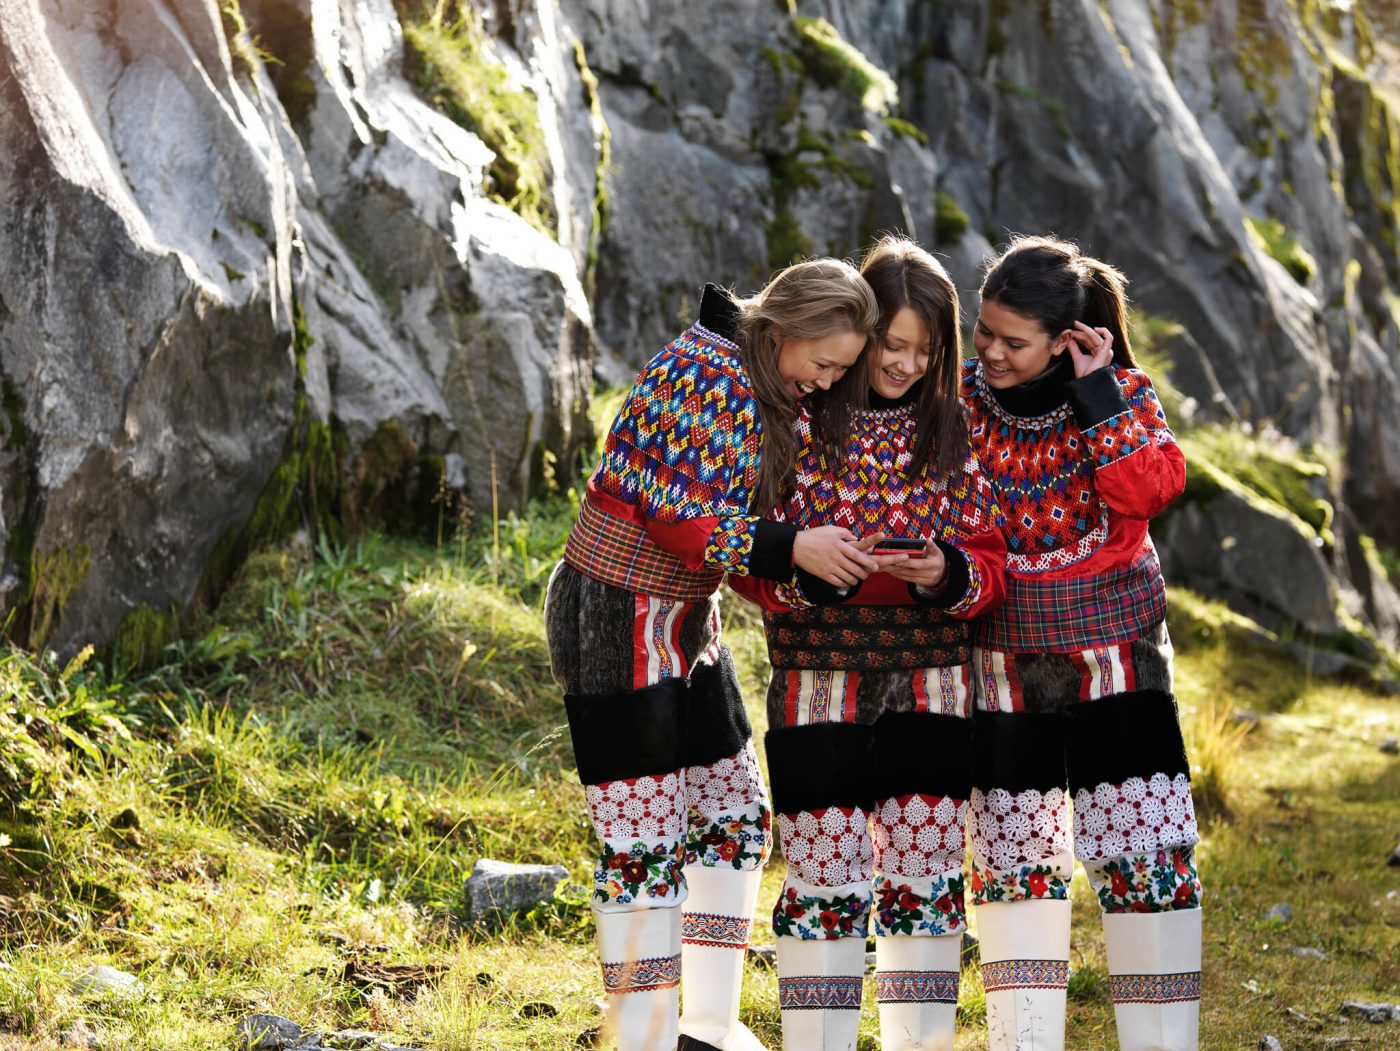 Young greenlandic women in national costume, by David Trood